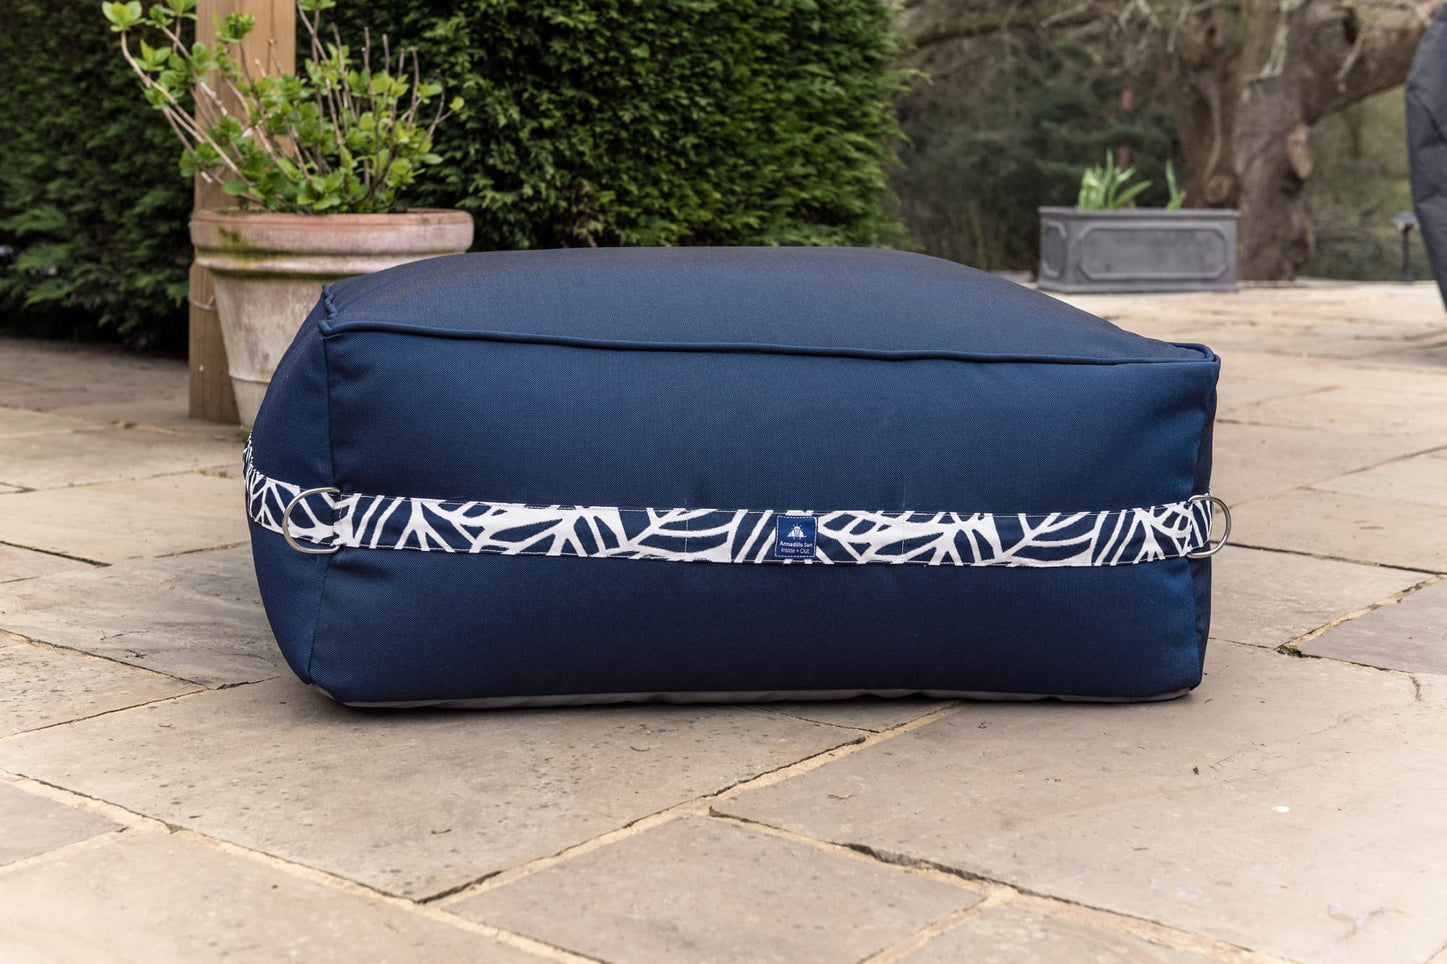 Monaco Modular Ben Bag Ottoman in Navy with Palm Patterned Straps armadillosun